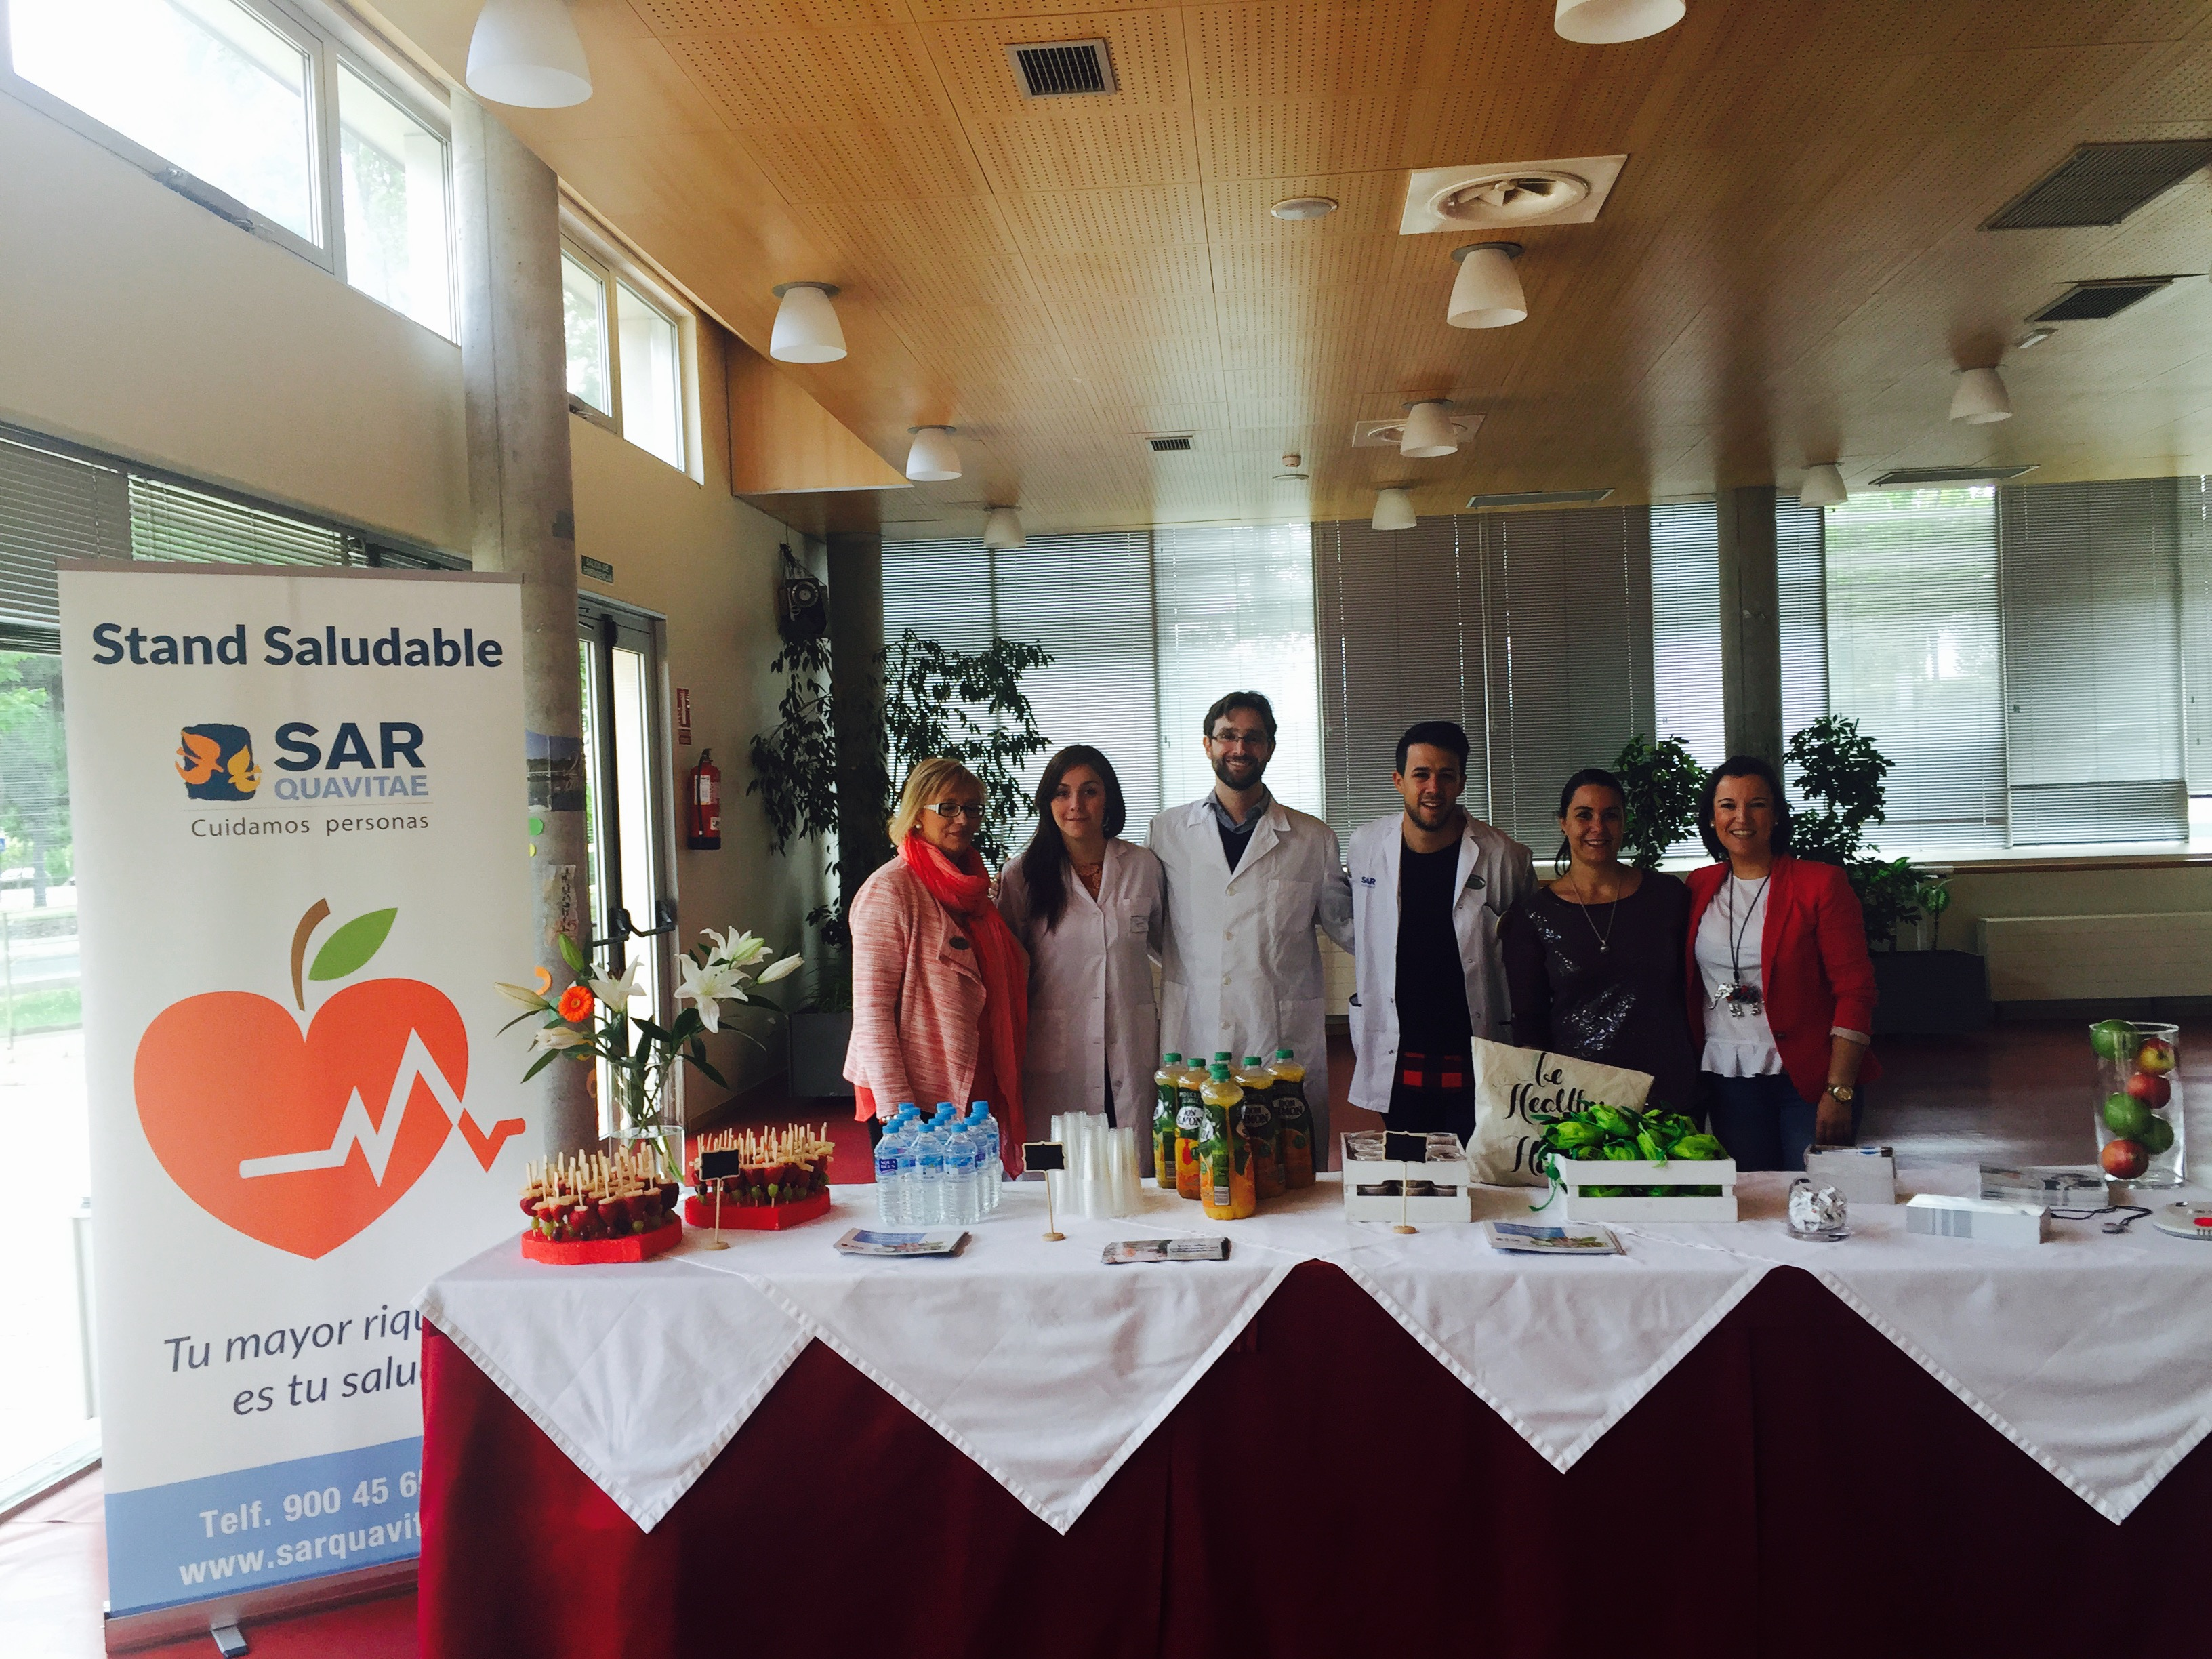 Tres Cantos Stand saludable9